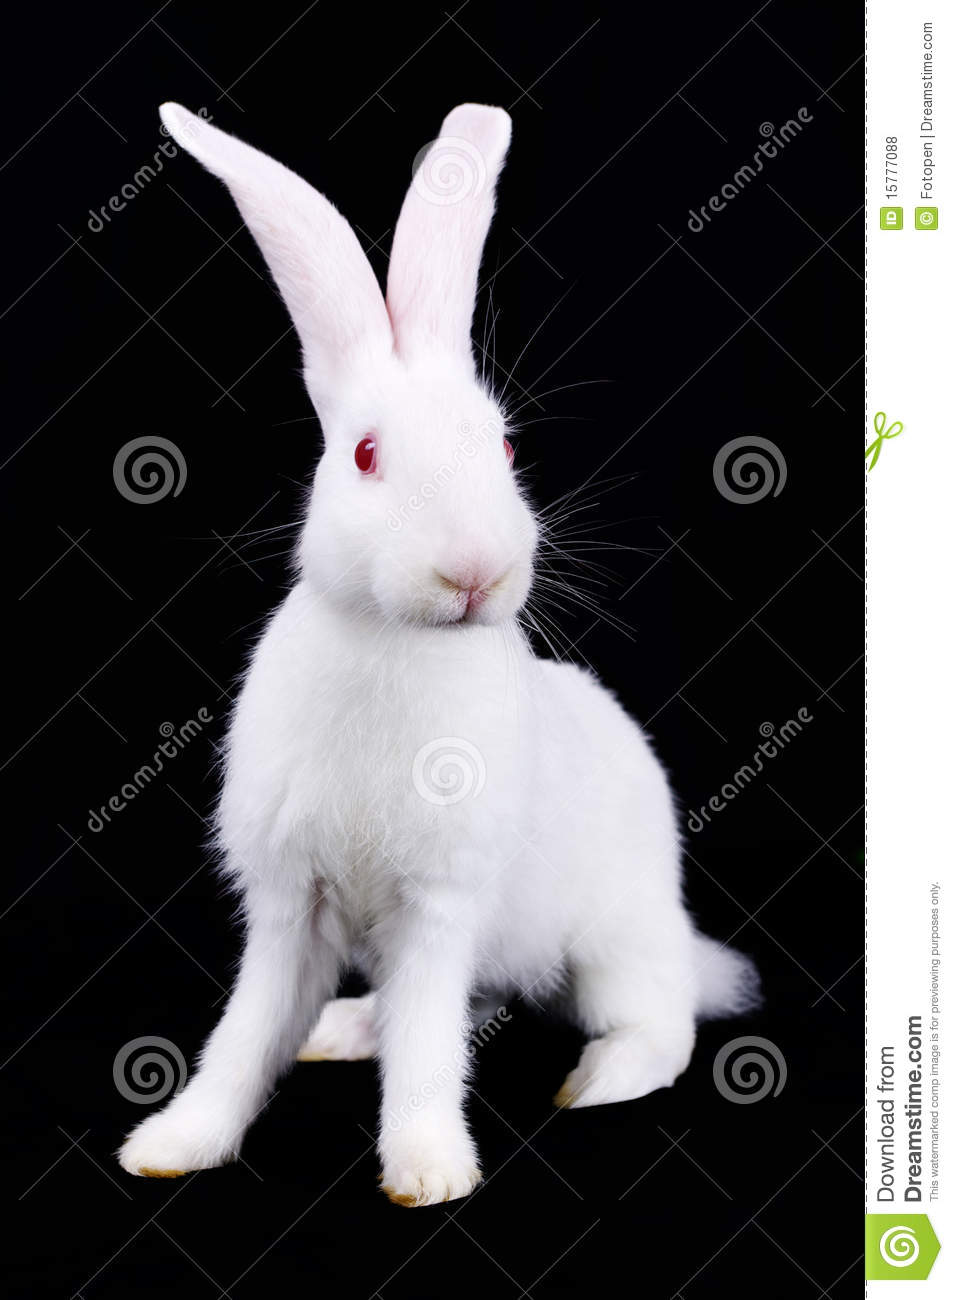 White Rabbit With Long Ears Royalty Free Stock Photos Image